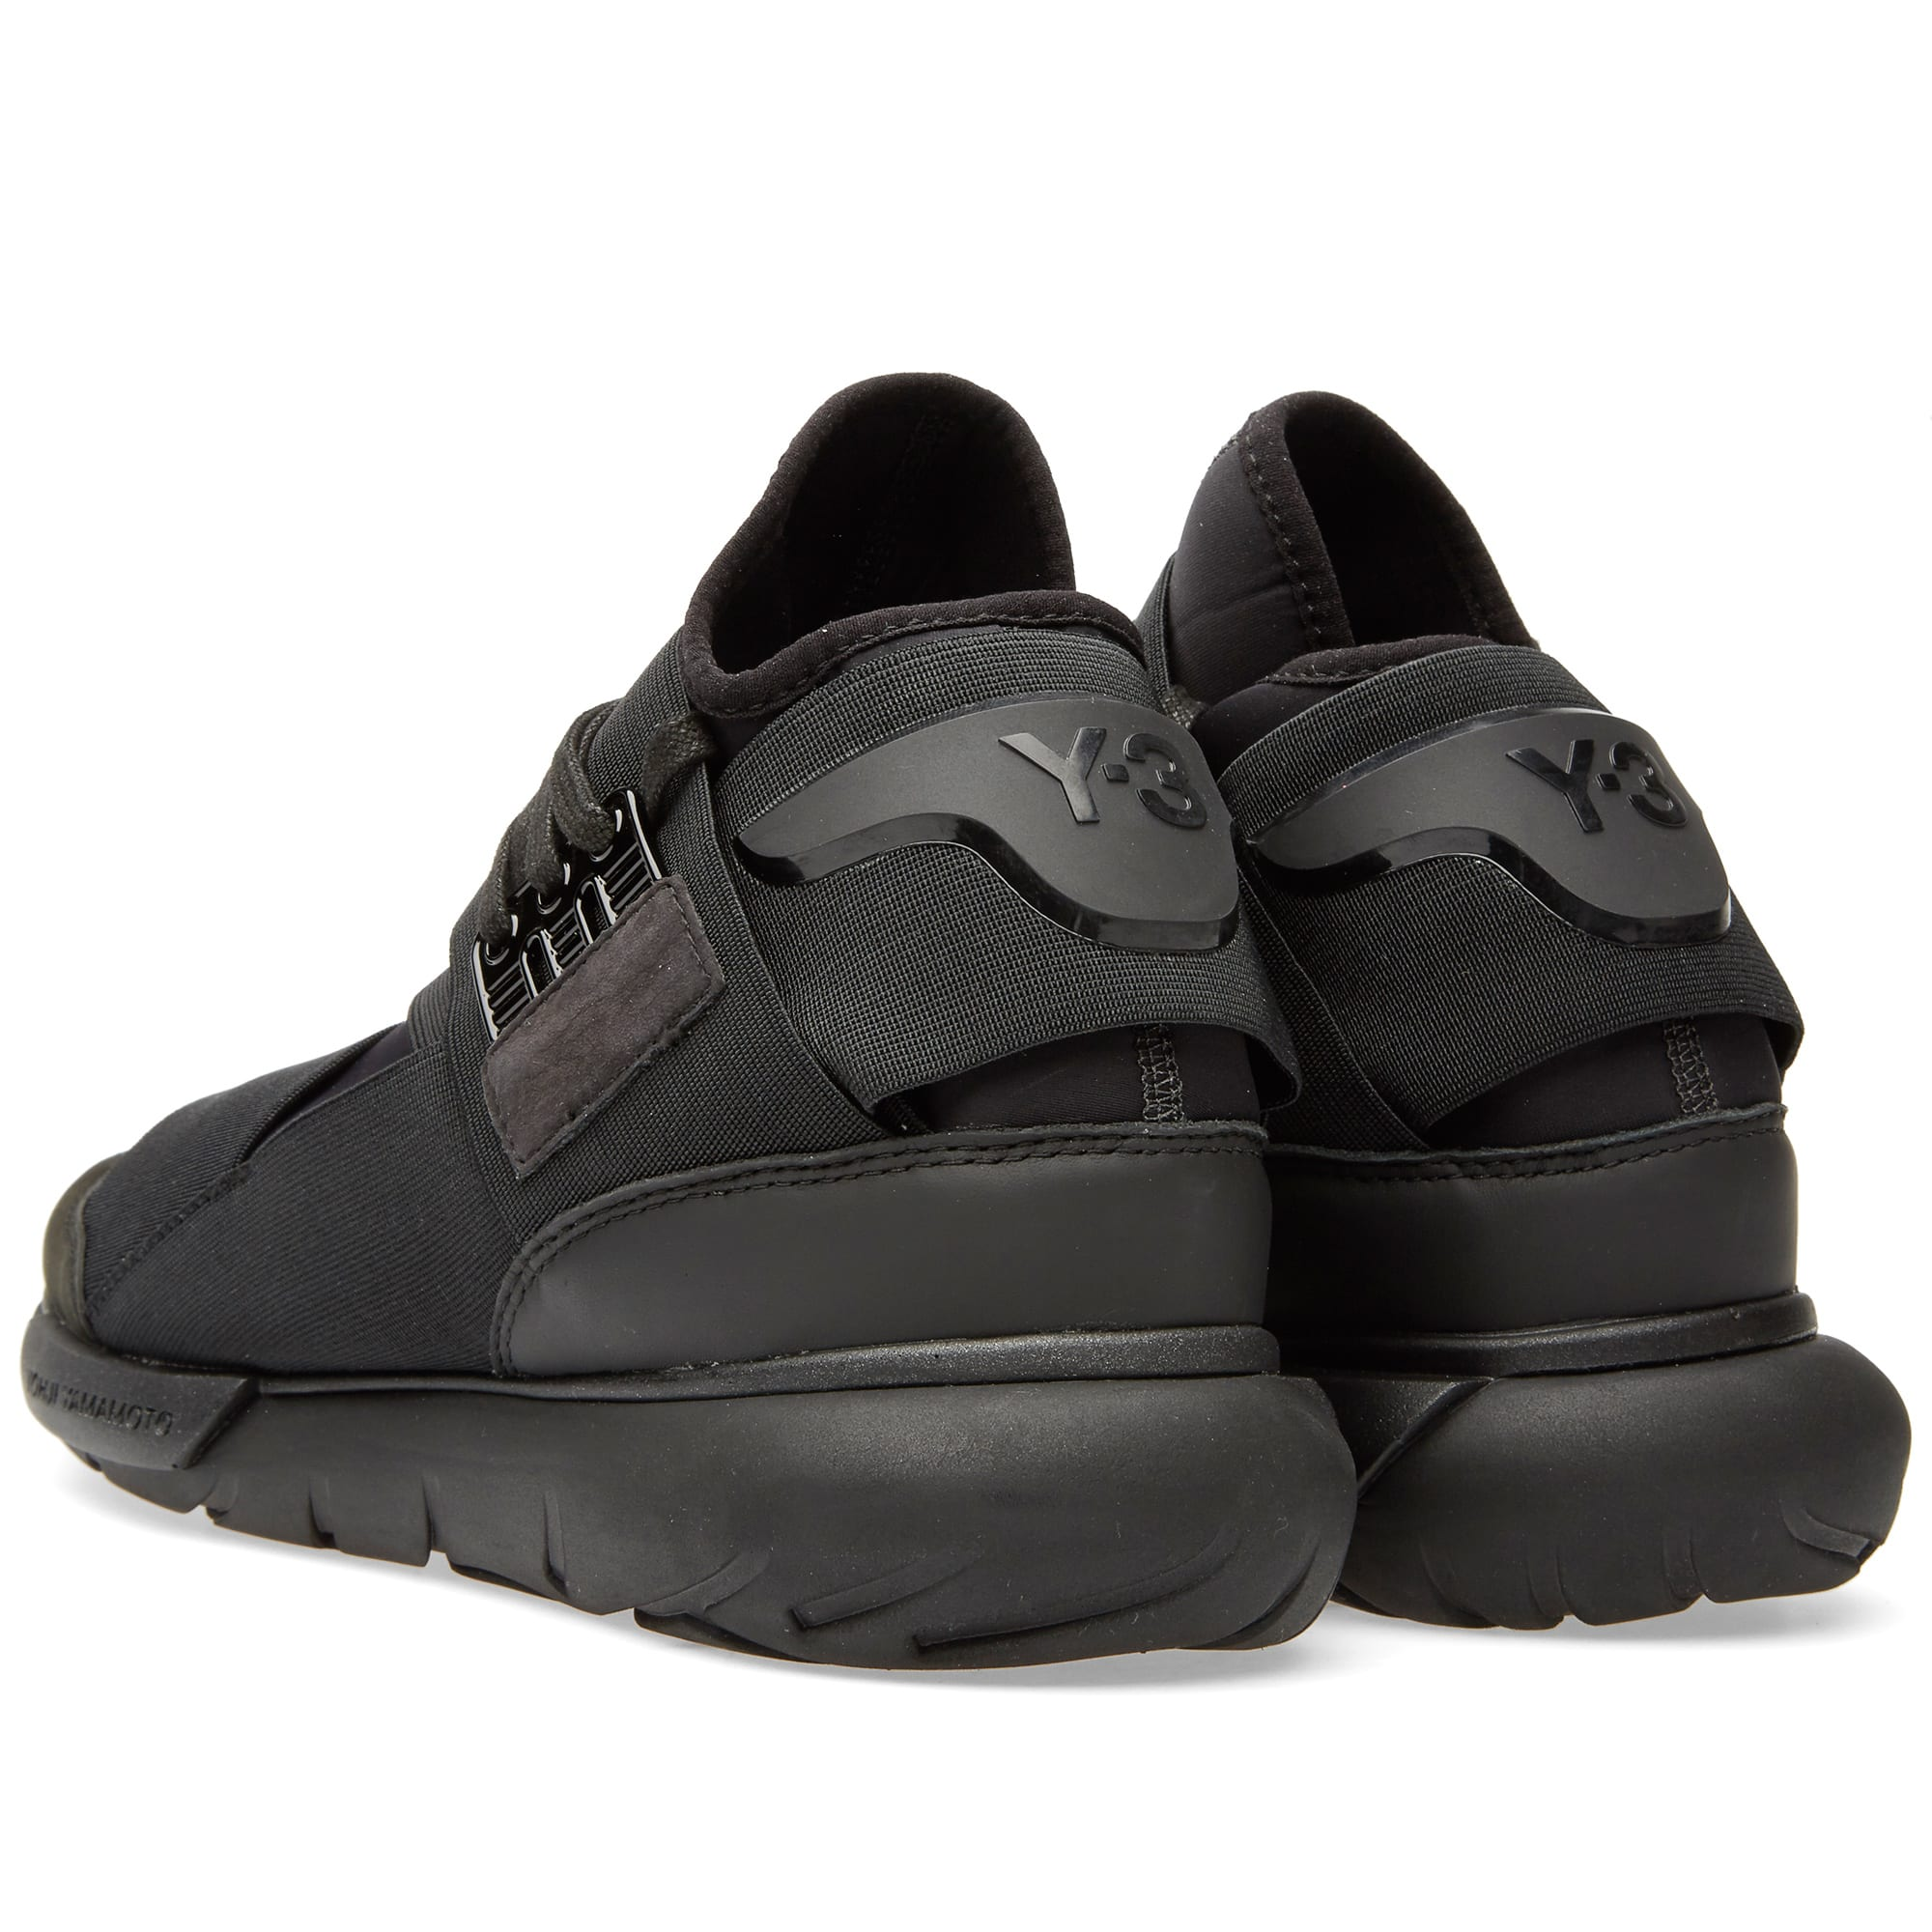 c4634c9d81259 Y-3 Qasa High Black